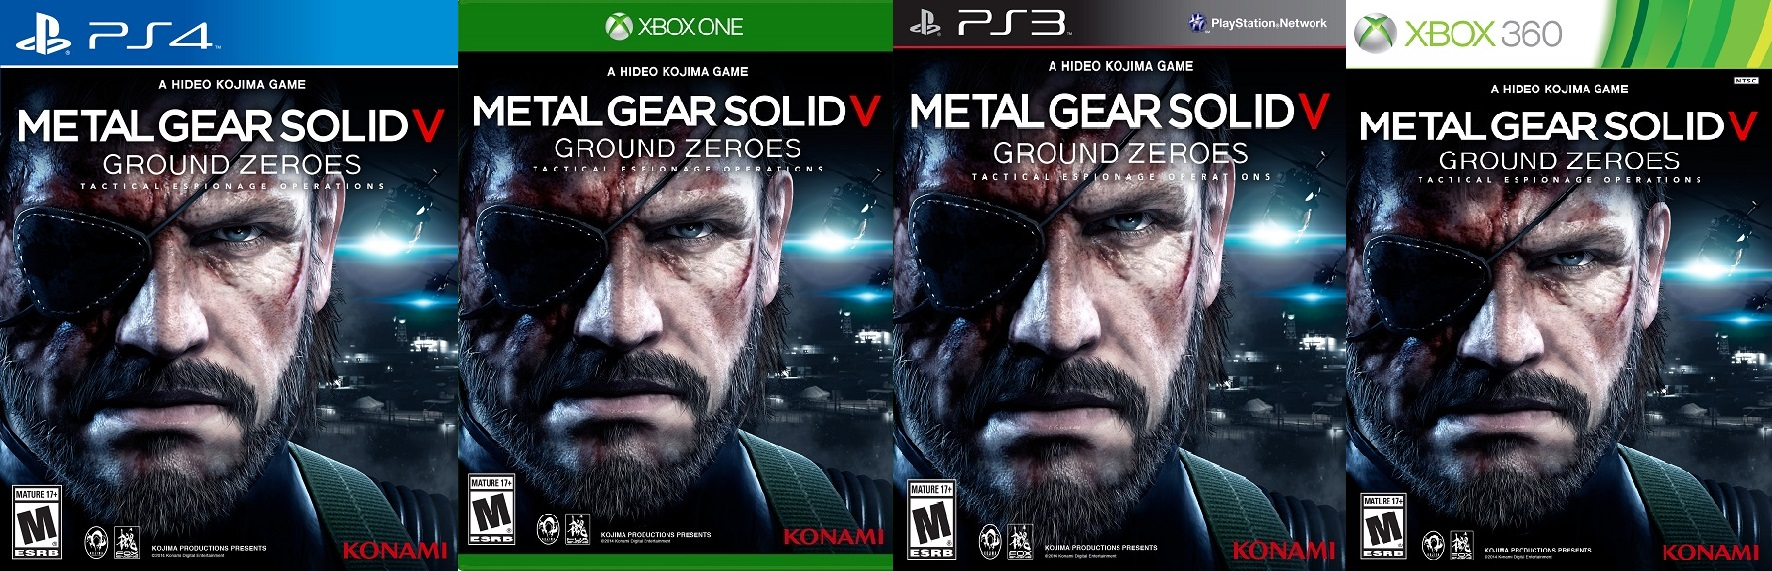 MGS_V_Ground_Zeroes_-_Covers_3_.jpg